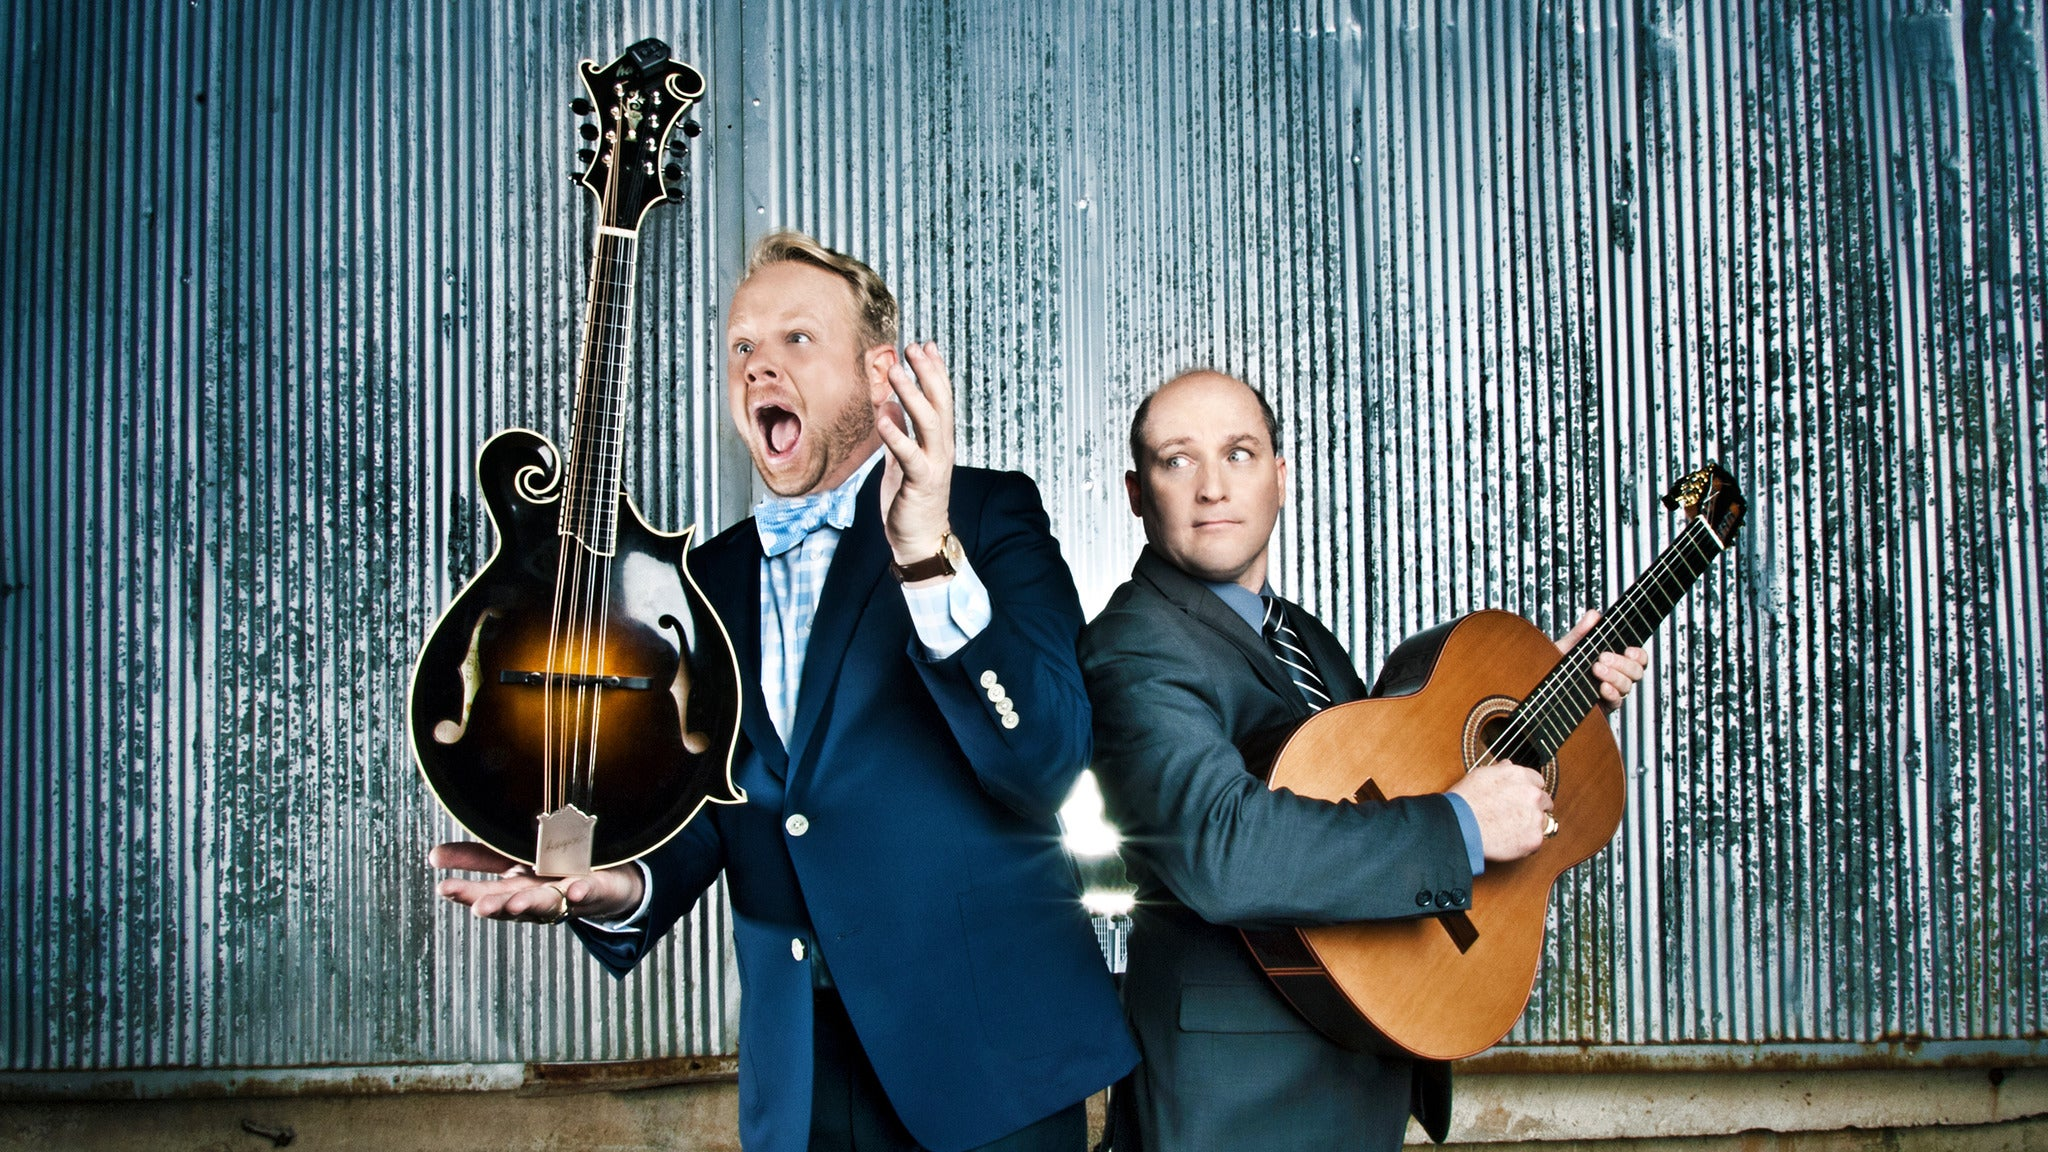 Dailey & Vincent at Mill Town Music Hall - Bremen, GA 30110